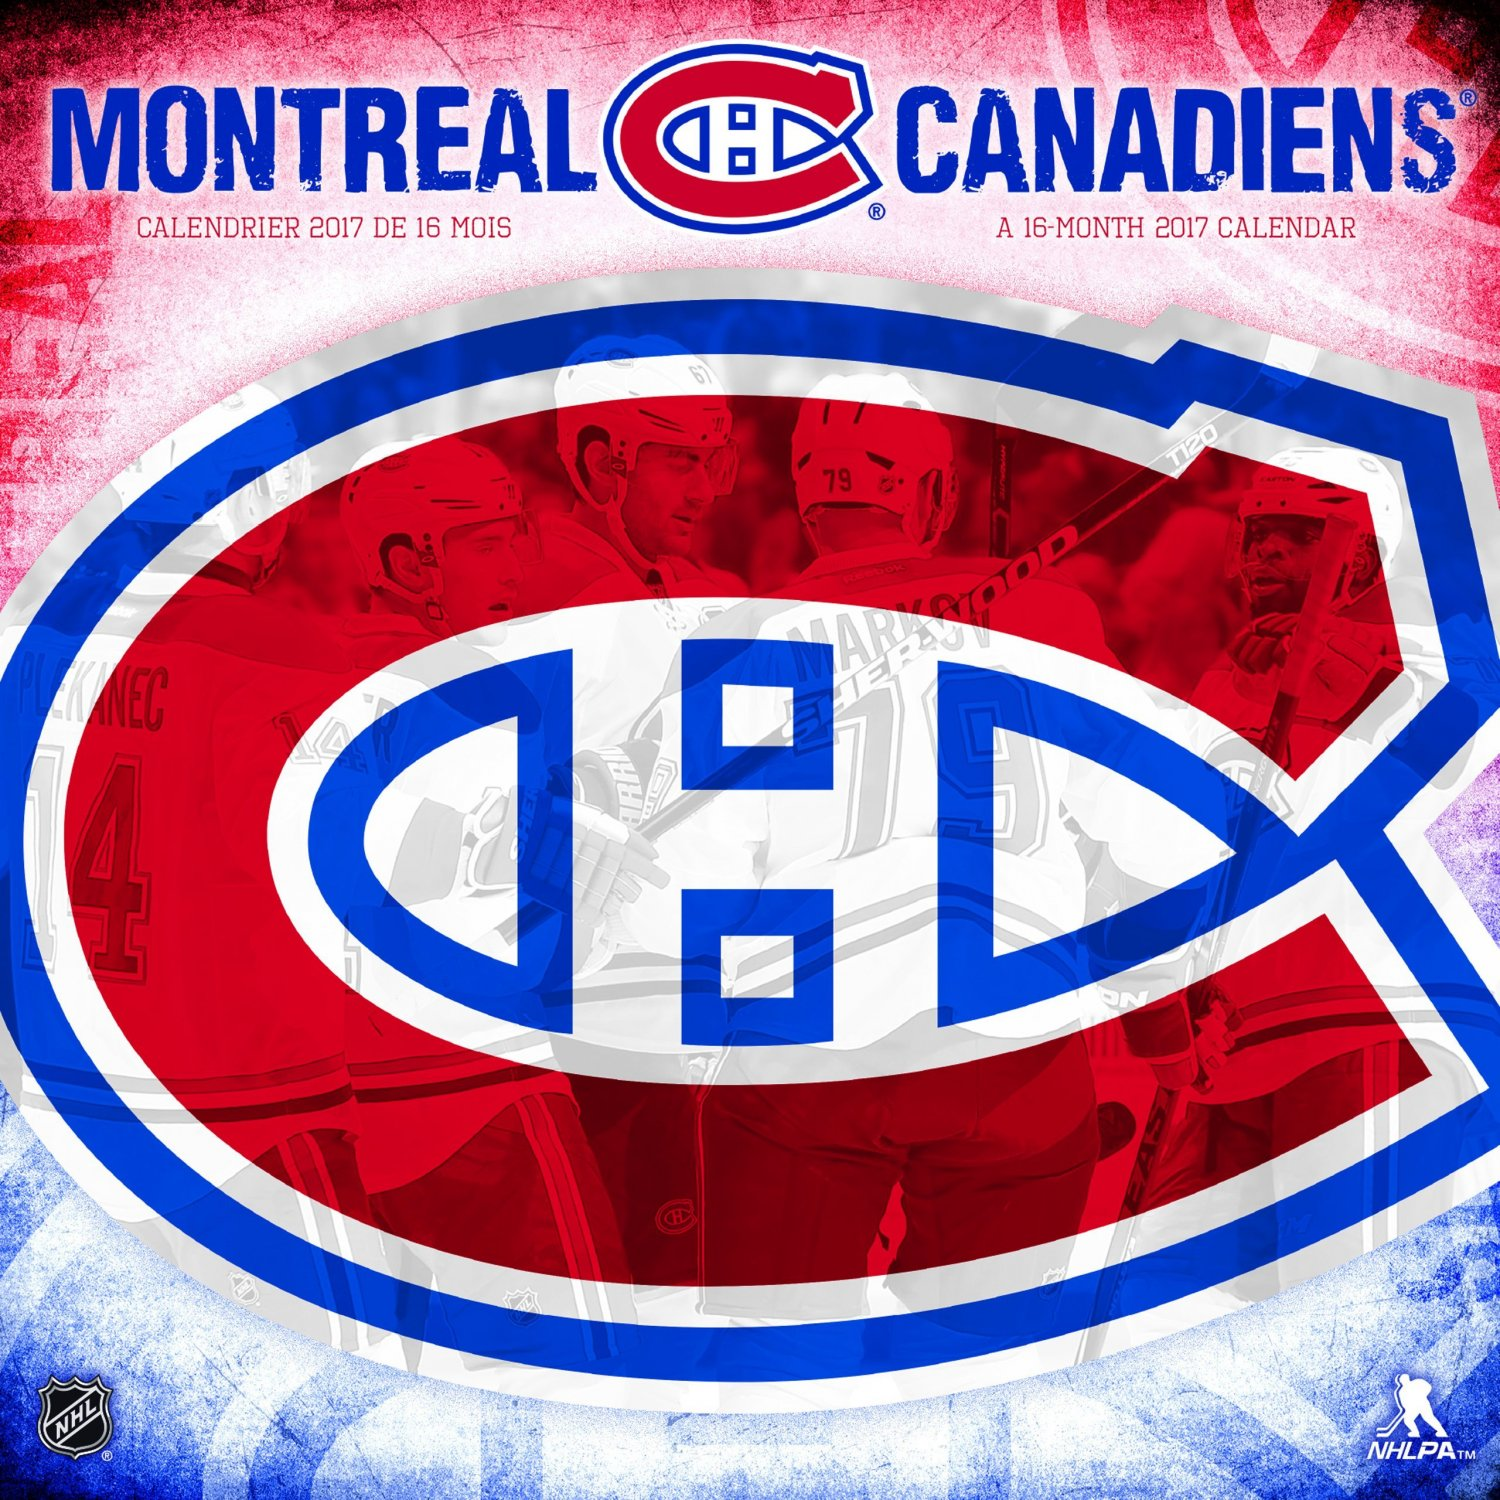 "2017 Wall Calendar, September 2016 - December 2017, 11.5"" x 11.5"", NHL Montreal Canadiens"